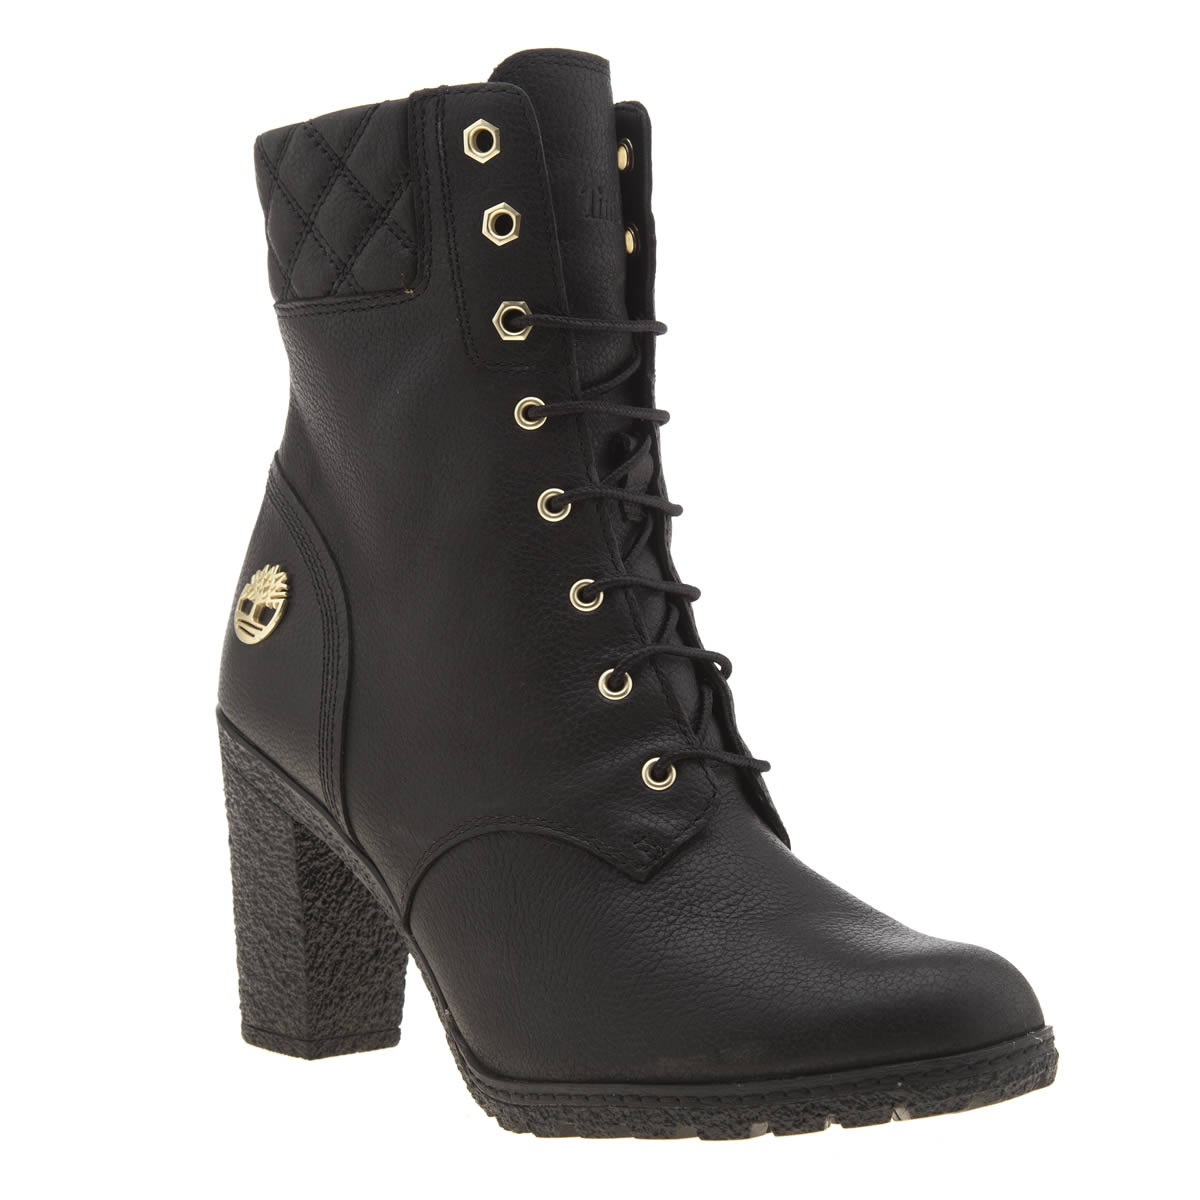 Ankle Boots | Flat Ankle Boots, Heeled, Lace Up & More | schuh